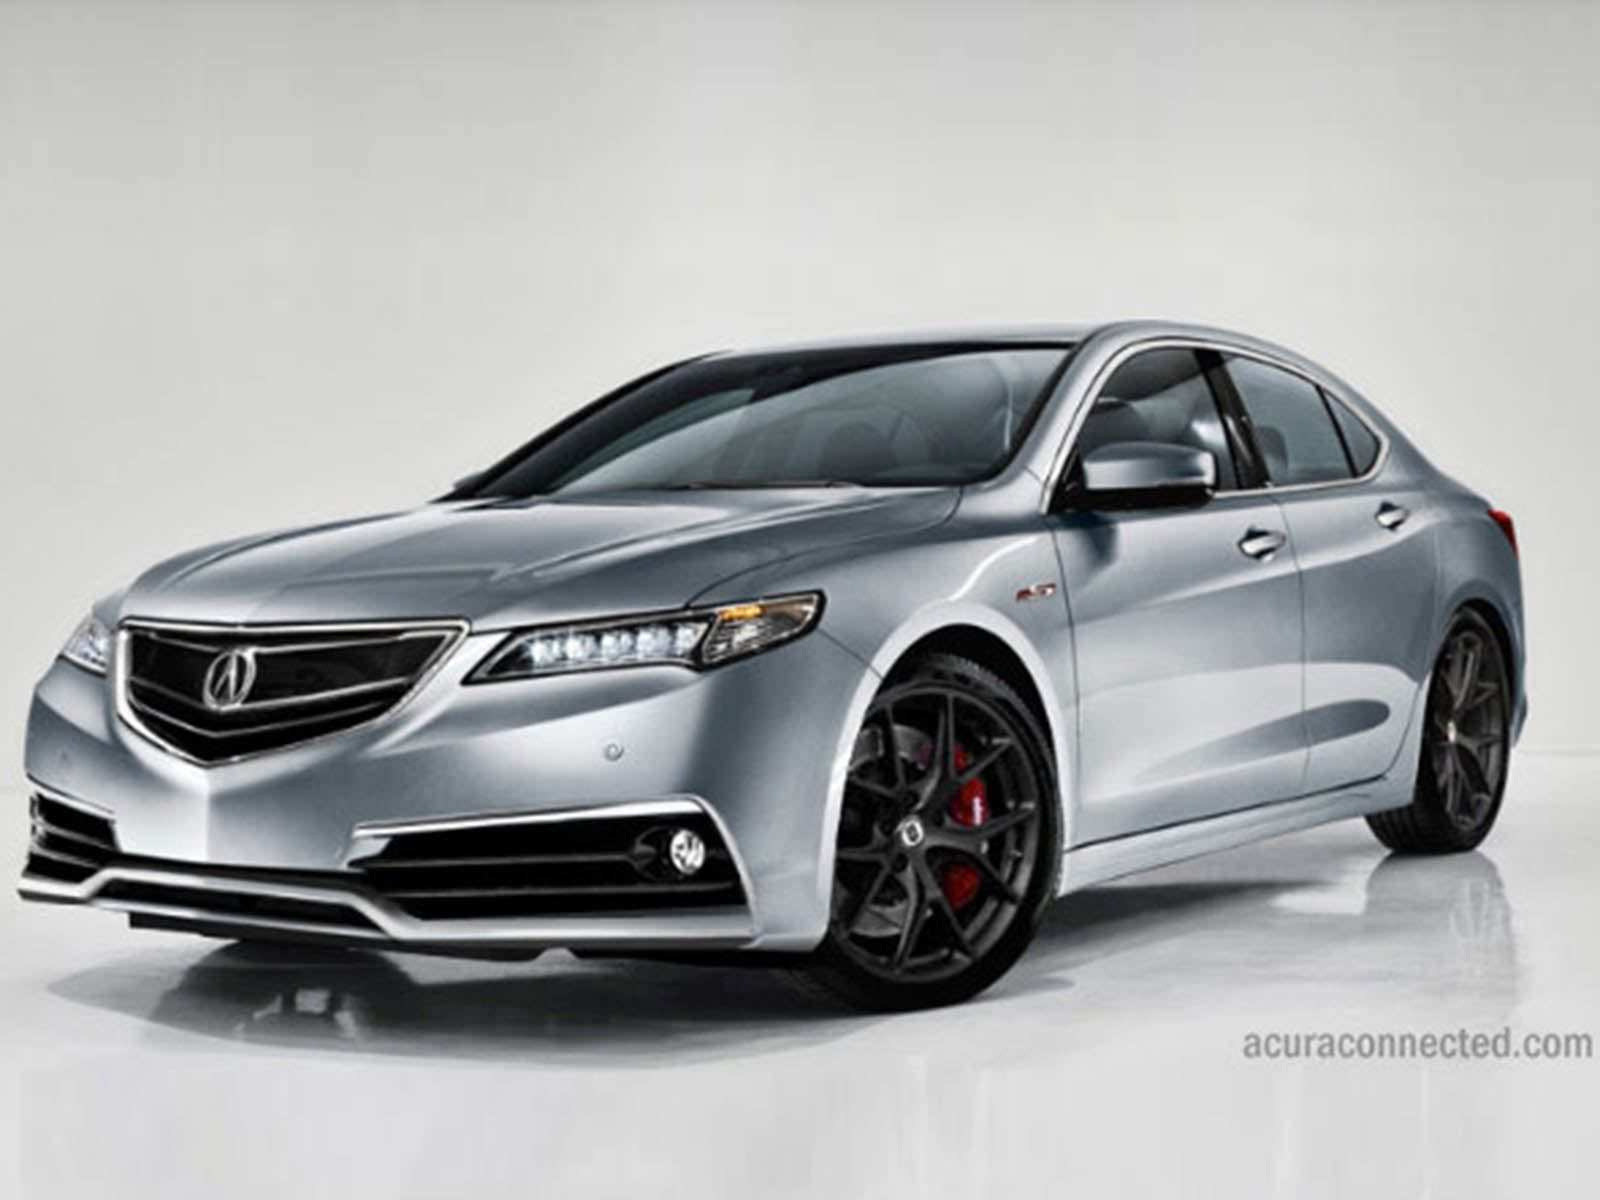 92 Concept of New 2019 Acura Tlx Youtube Rumor Speed Test by New 2019 Acura Tlx Youtube Rumor